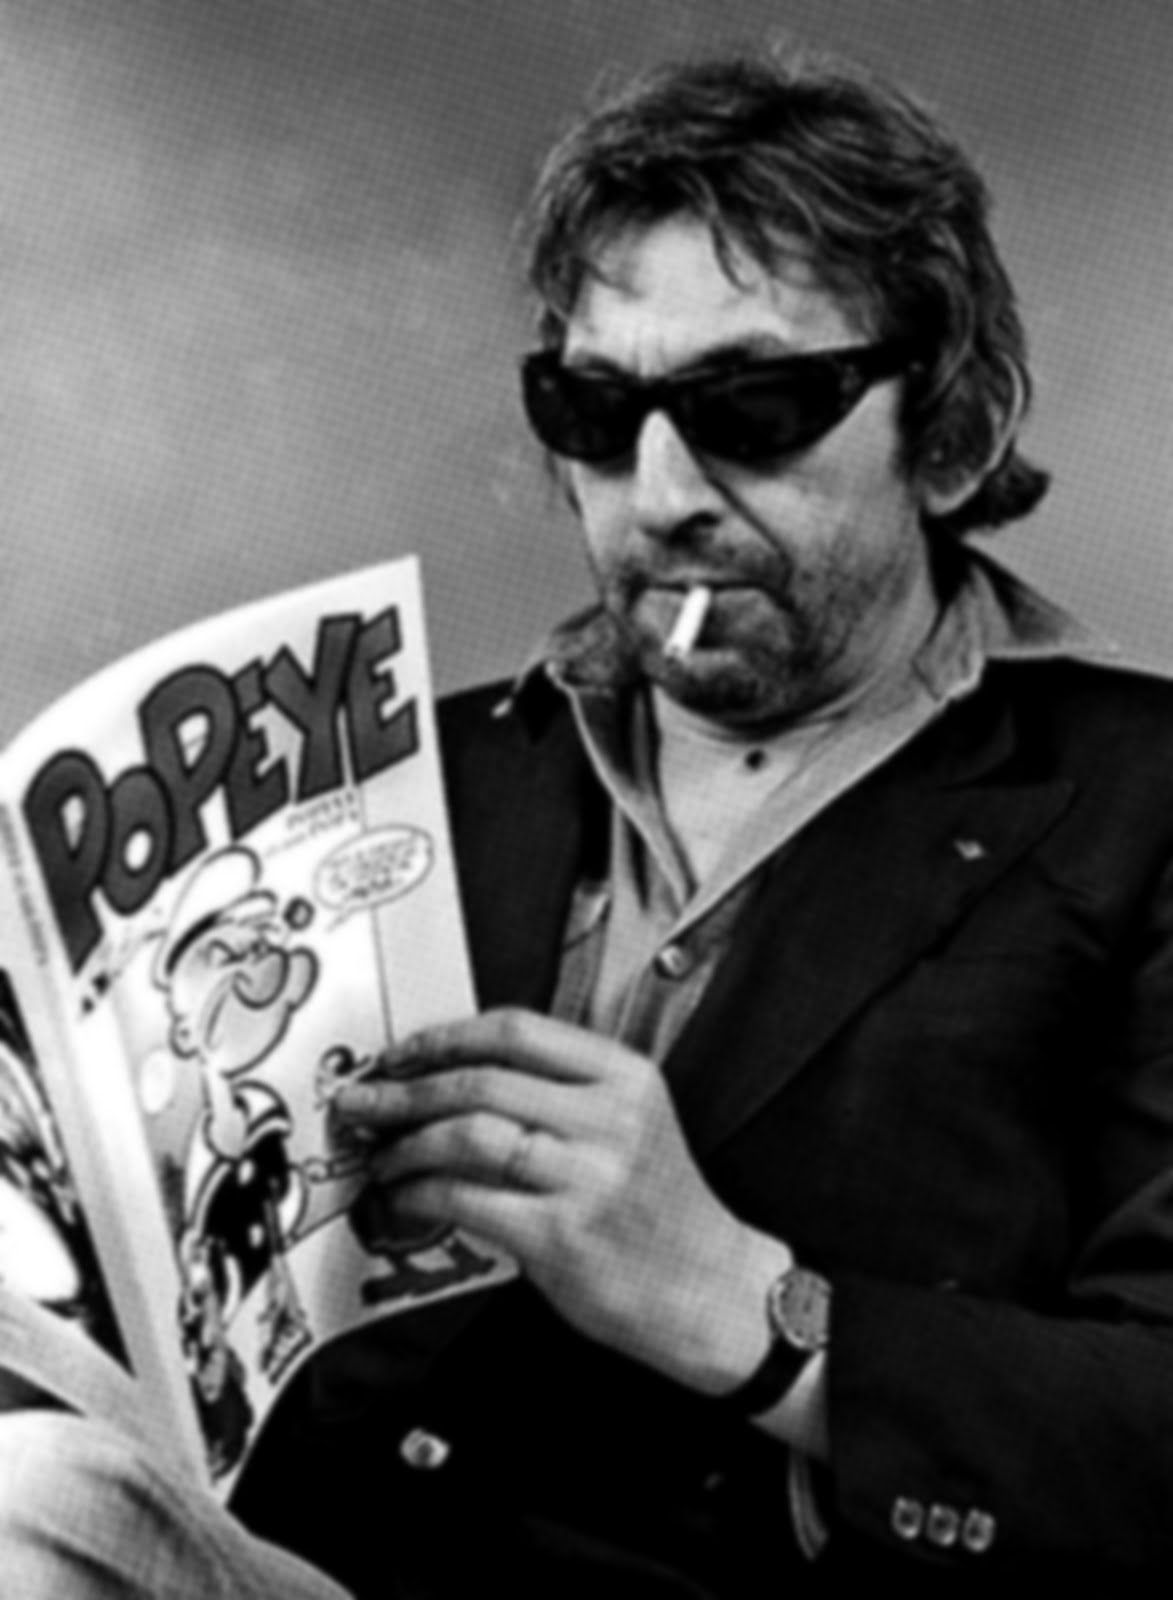 Serge Gainsbourg reading the great American philosopher Popeye the Sailor Man